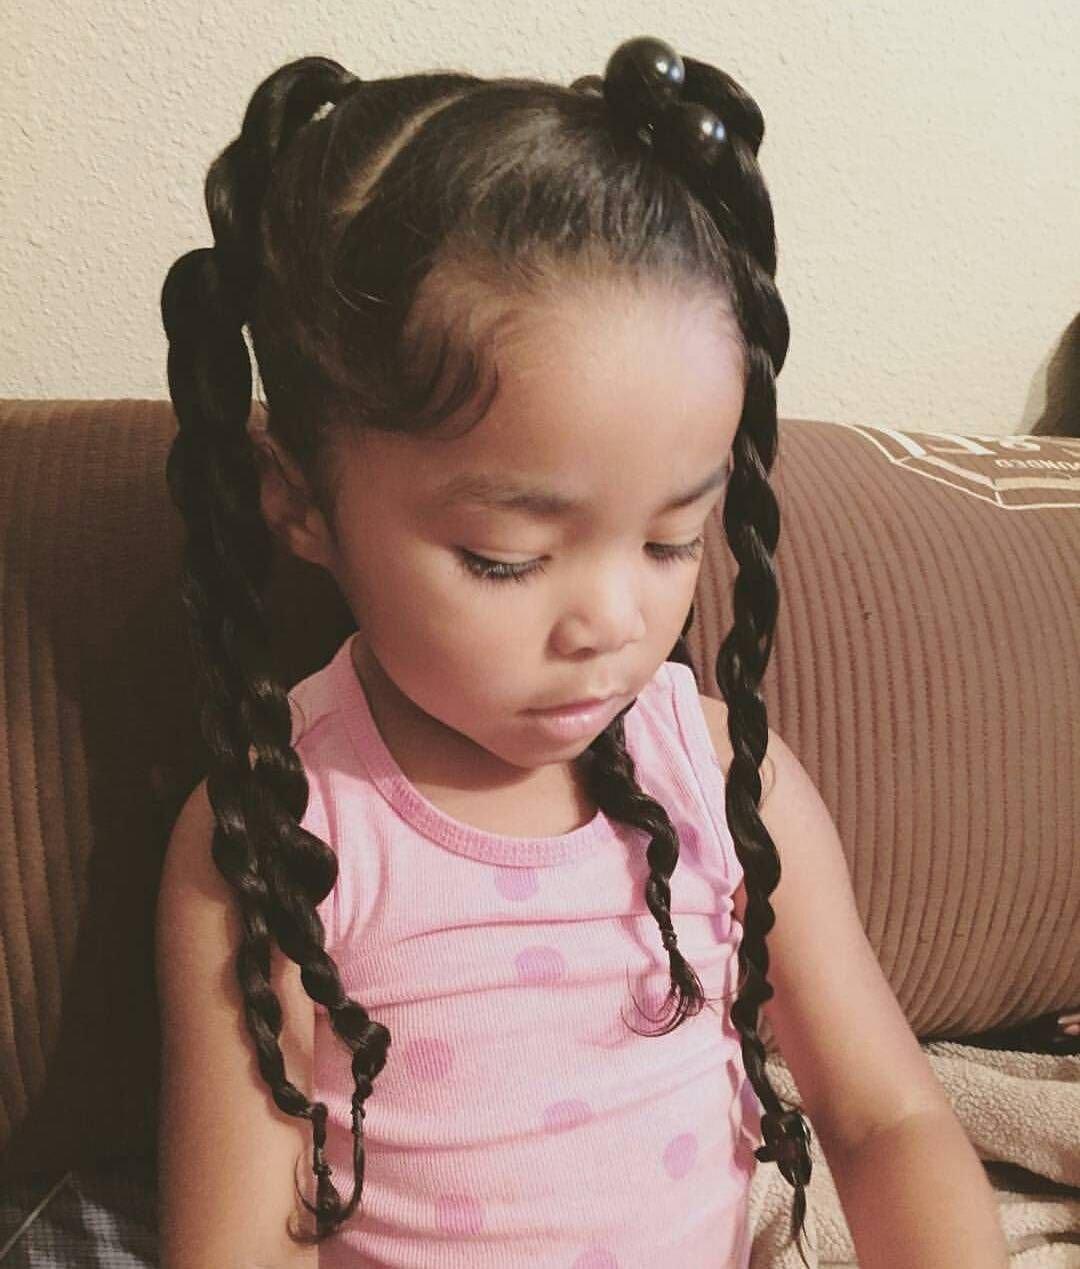 The Best Pin By Deanna Diamond On Adorable Kids In 2019 Mixed Kids Hairstyles Baby Girl Hairstyles Pictures